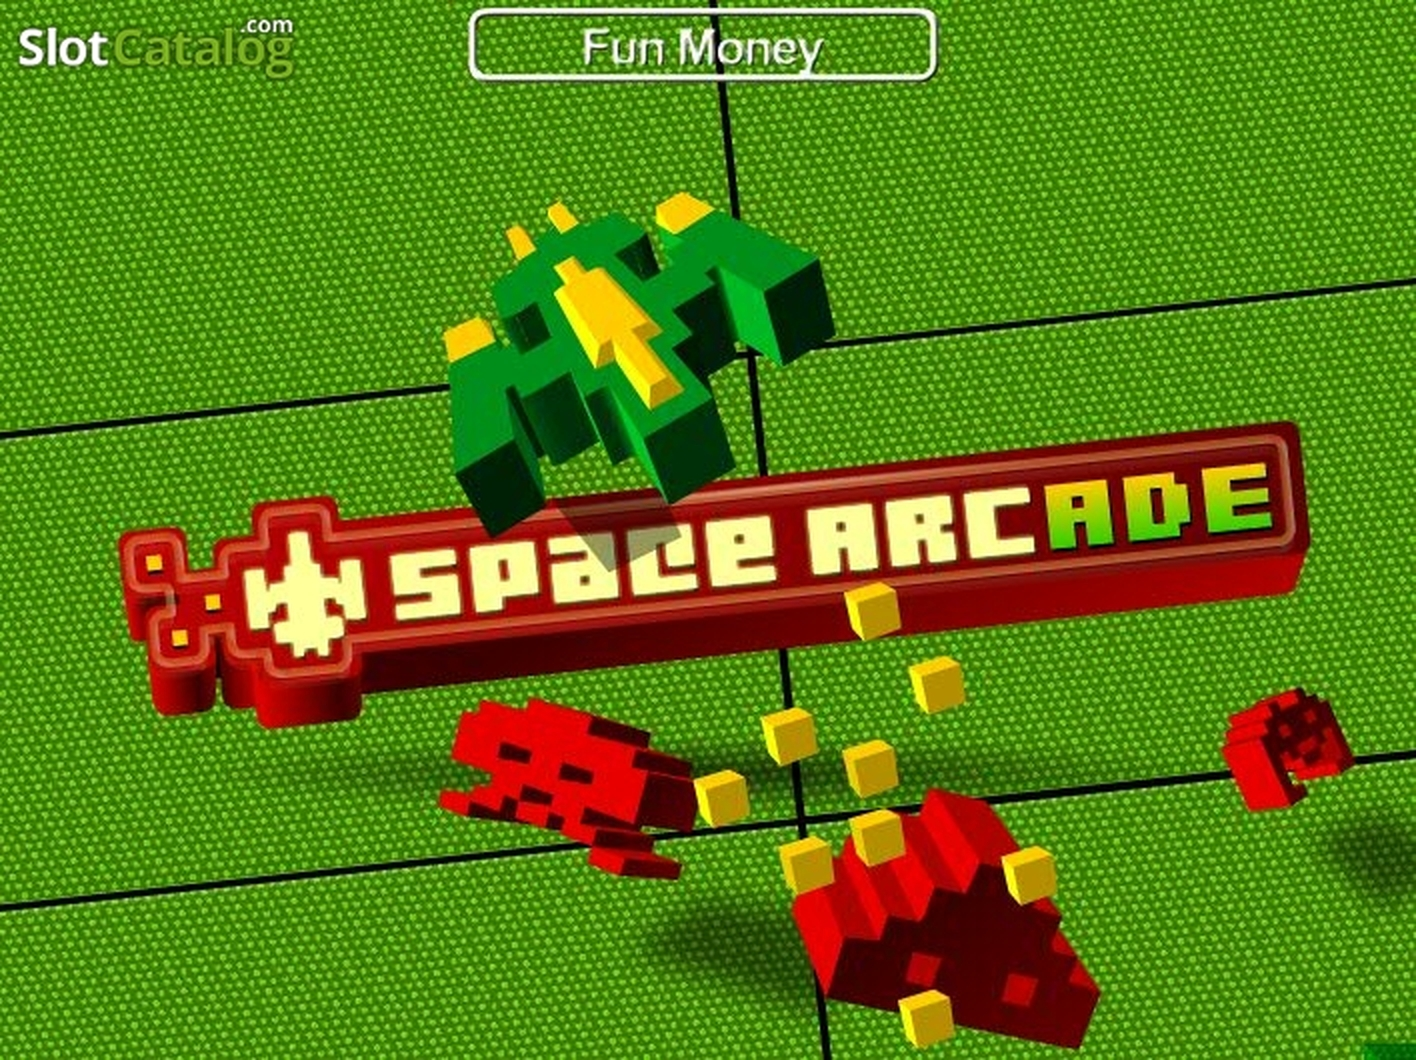 The Space Arcade (SkillOnNet) Online Slot Demo Game by SkillOnNet